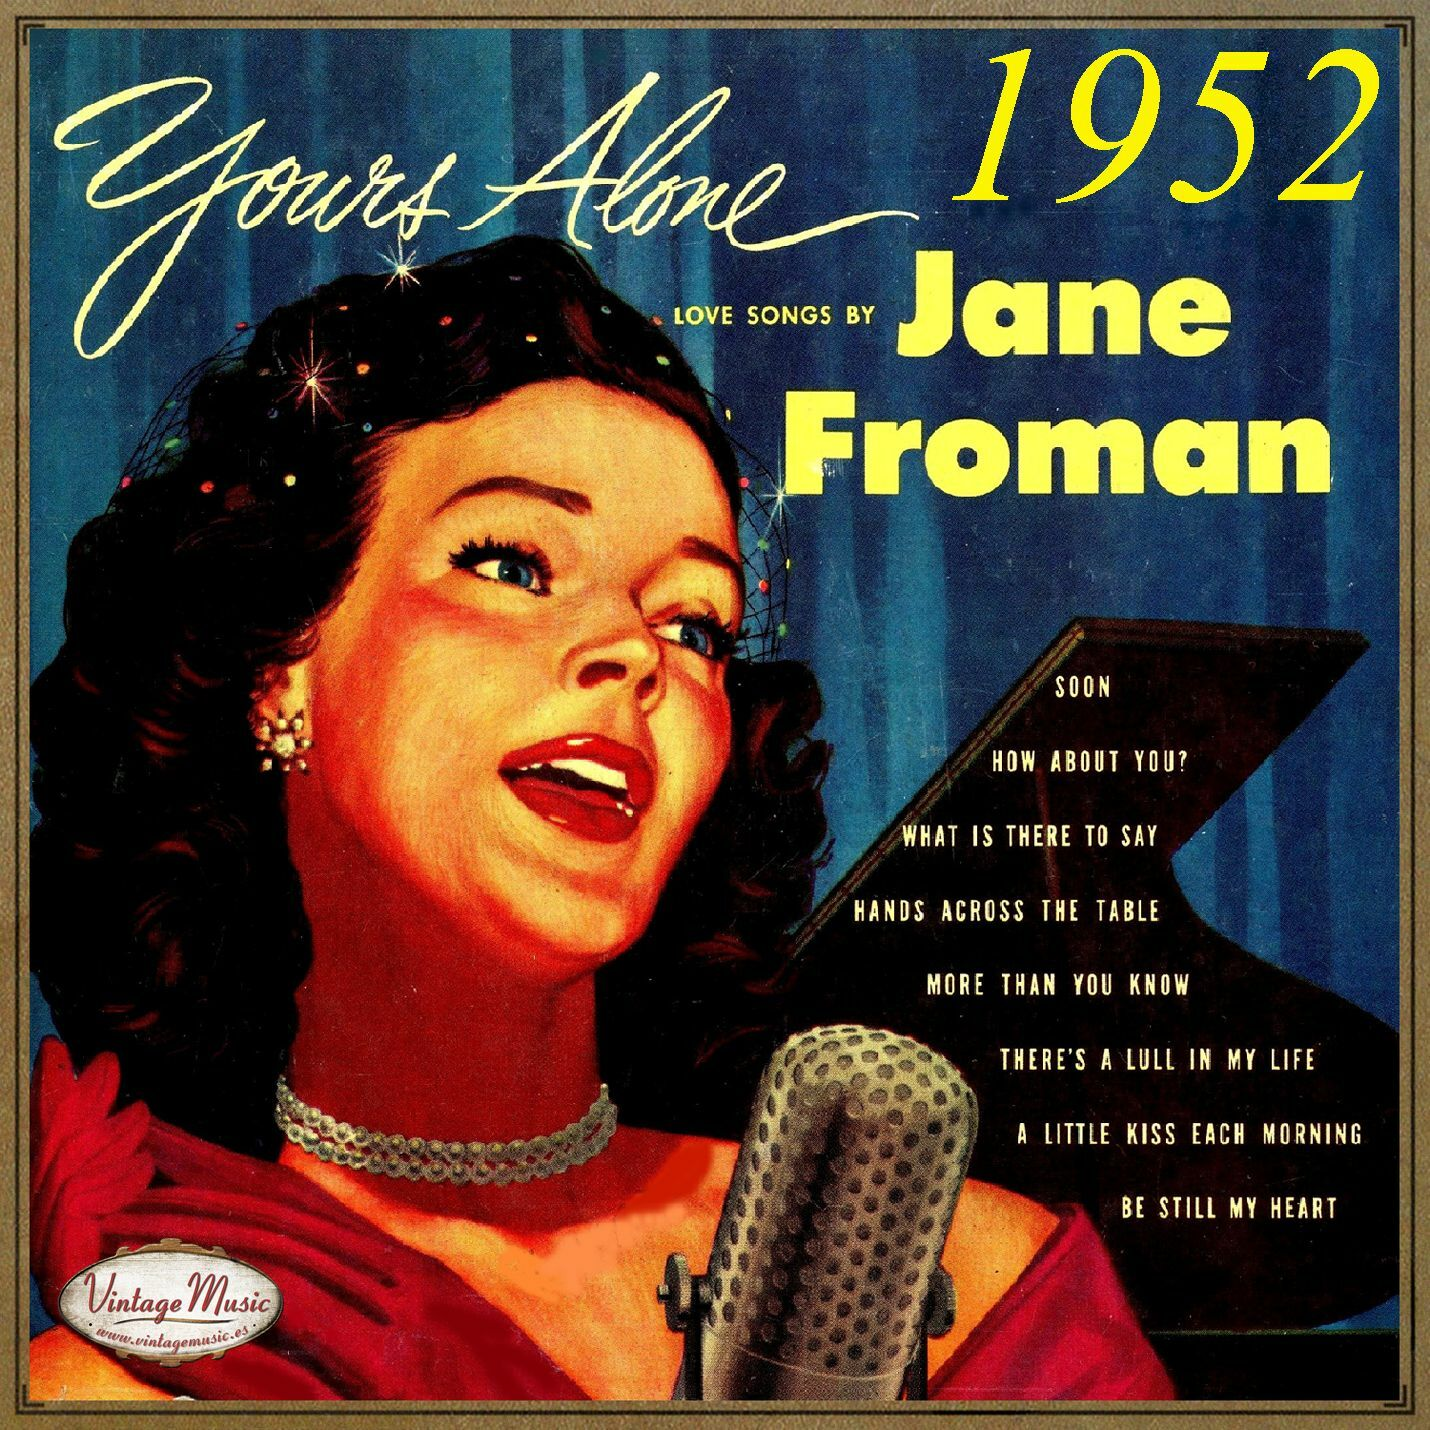 Jane Froman - JANE FROMAN CD Vintage Vocal Jazz Yours Alone 1952 , Love Songs How About You - CD